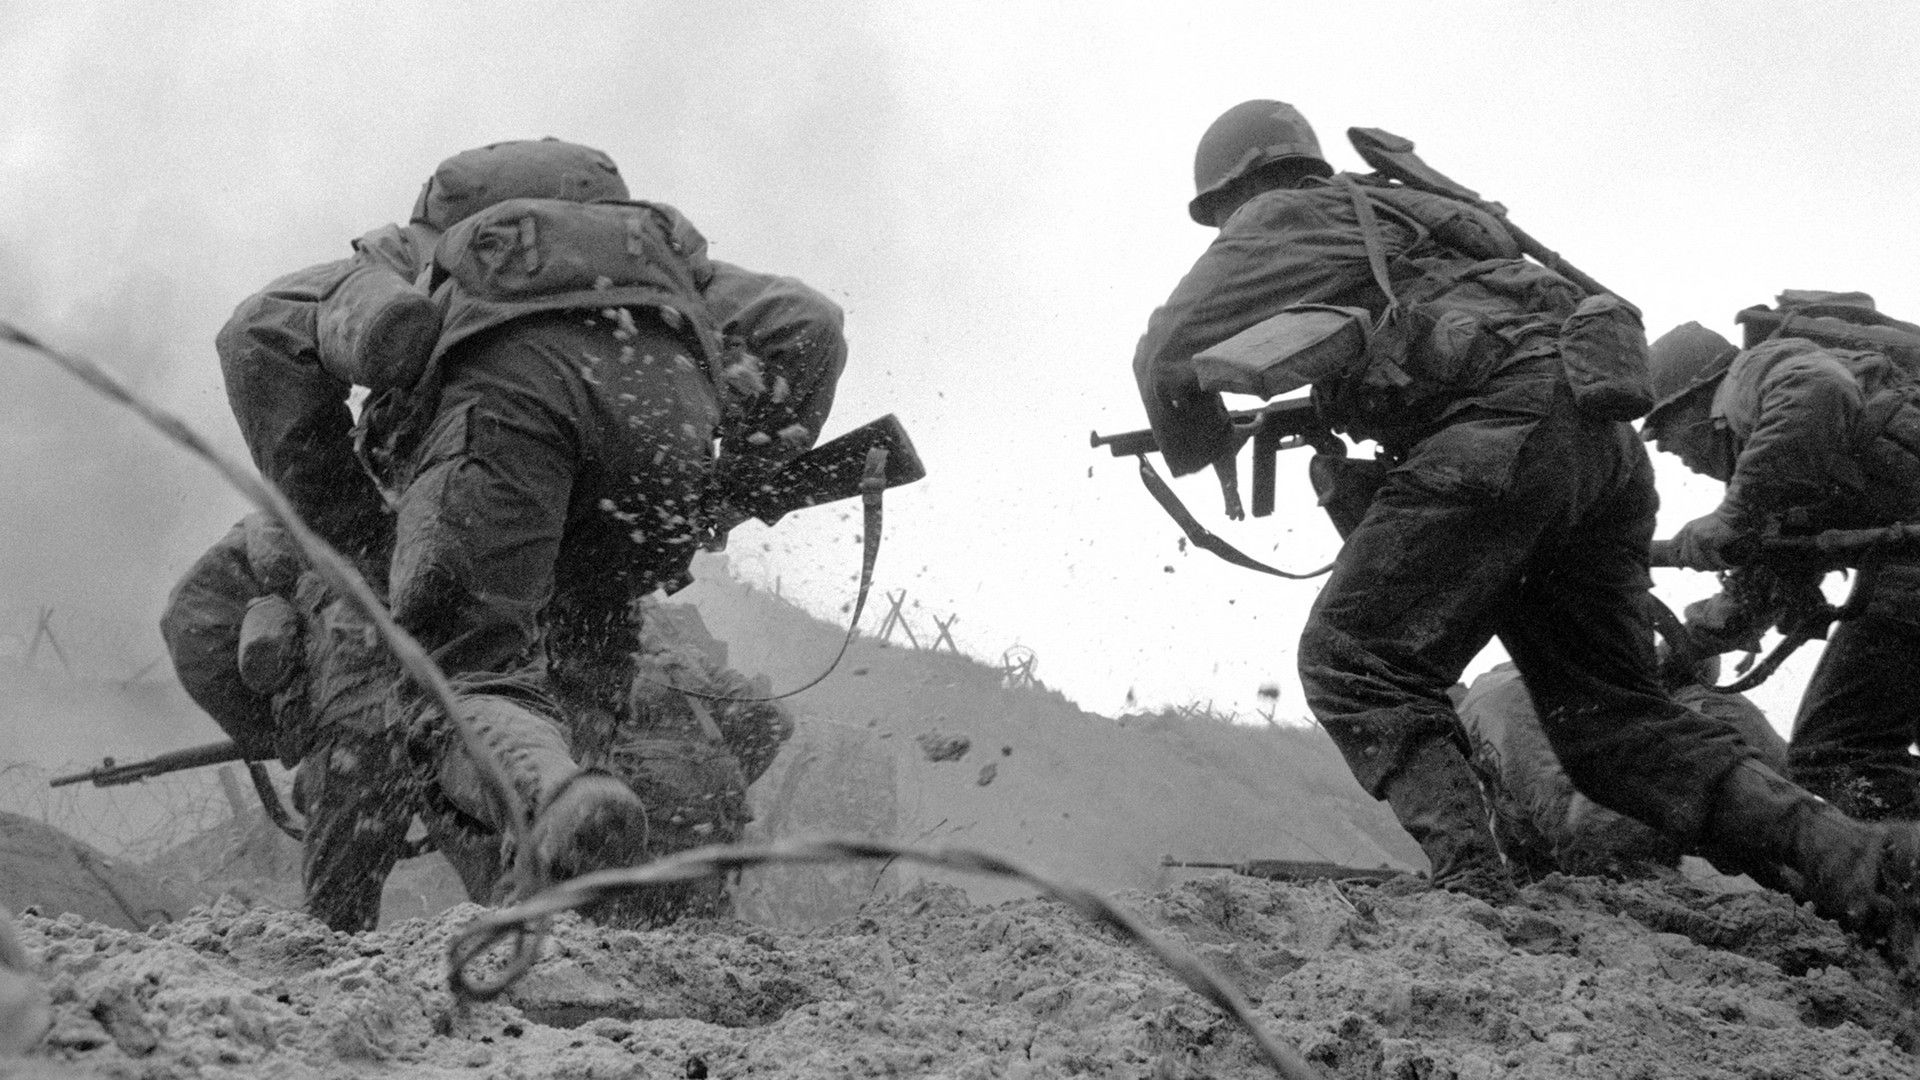 Day reenactment ww ii pictures pinterest - Explore World War Ii Saving Private Ryan And More